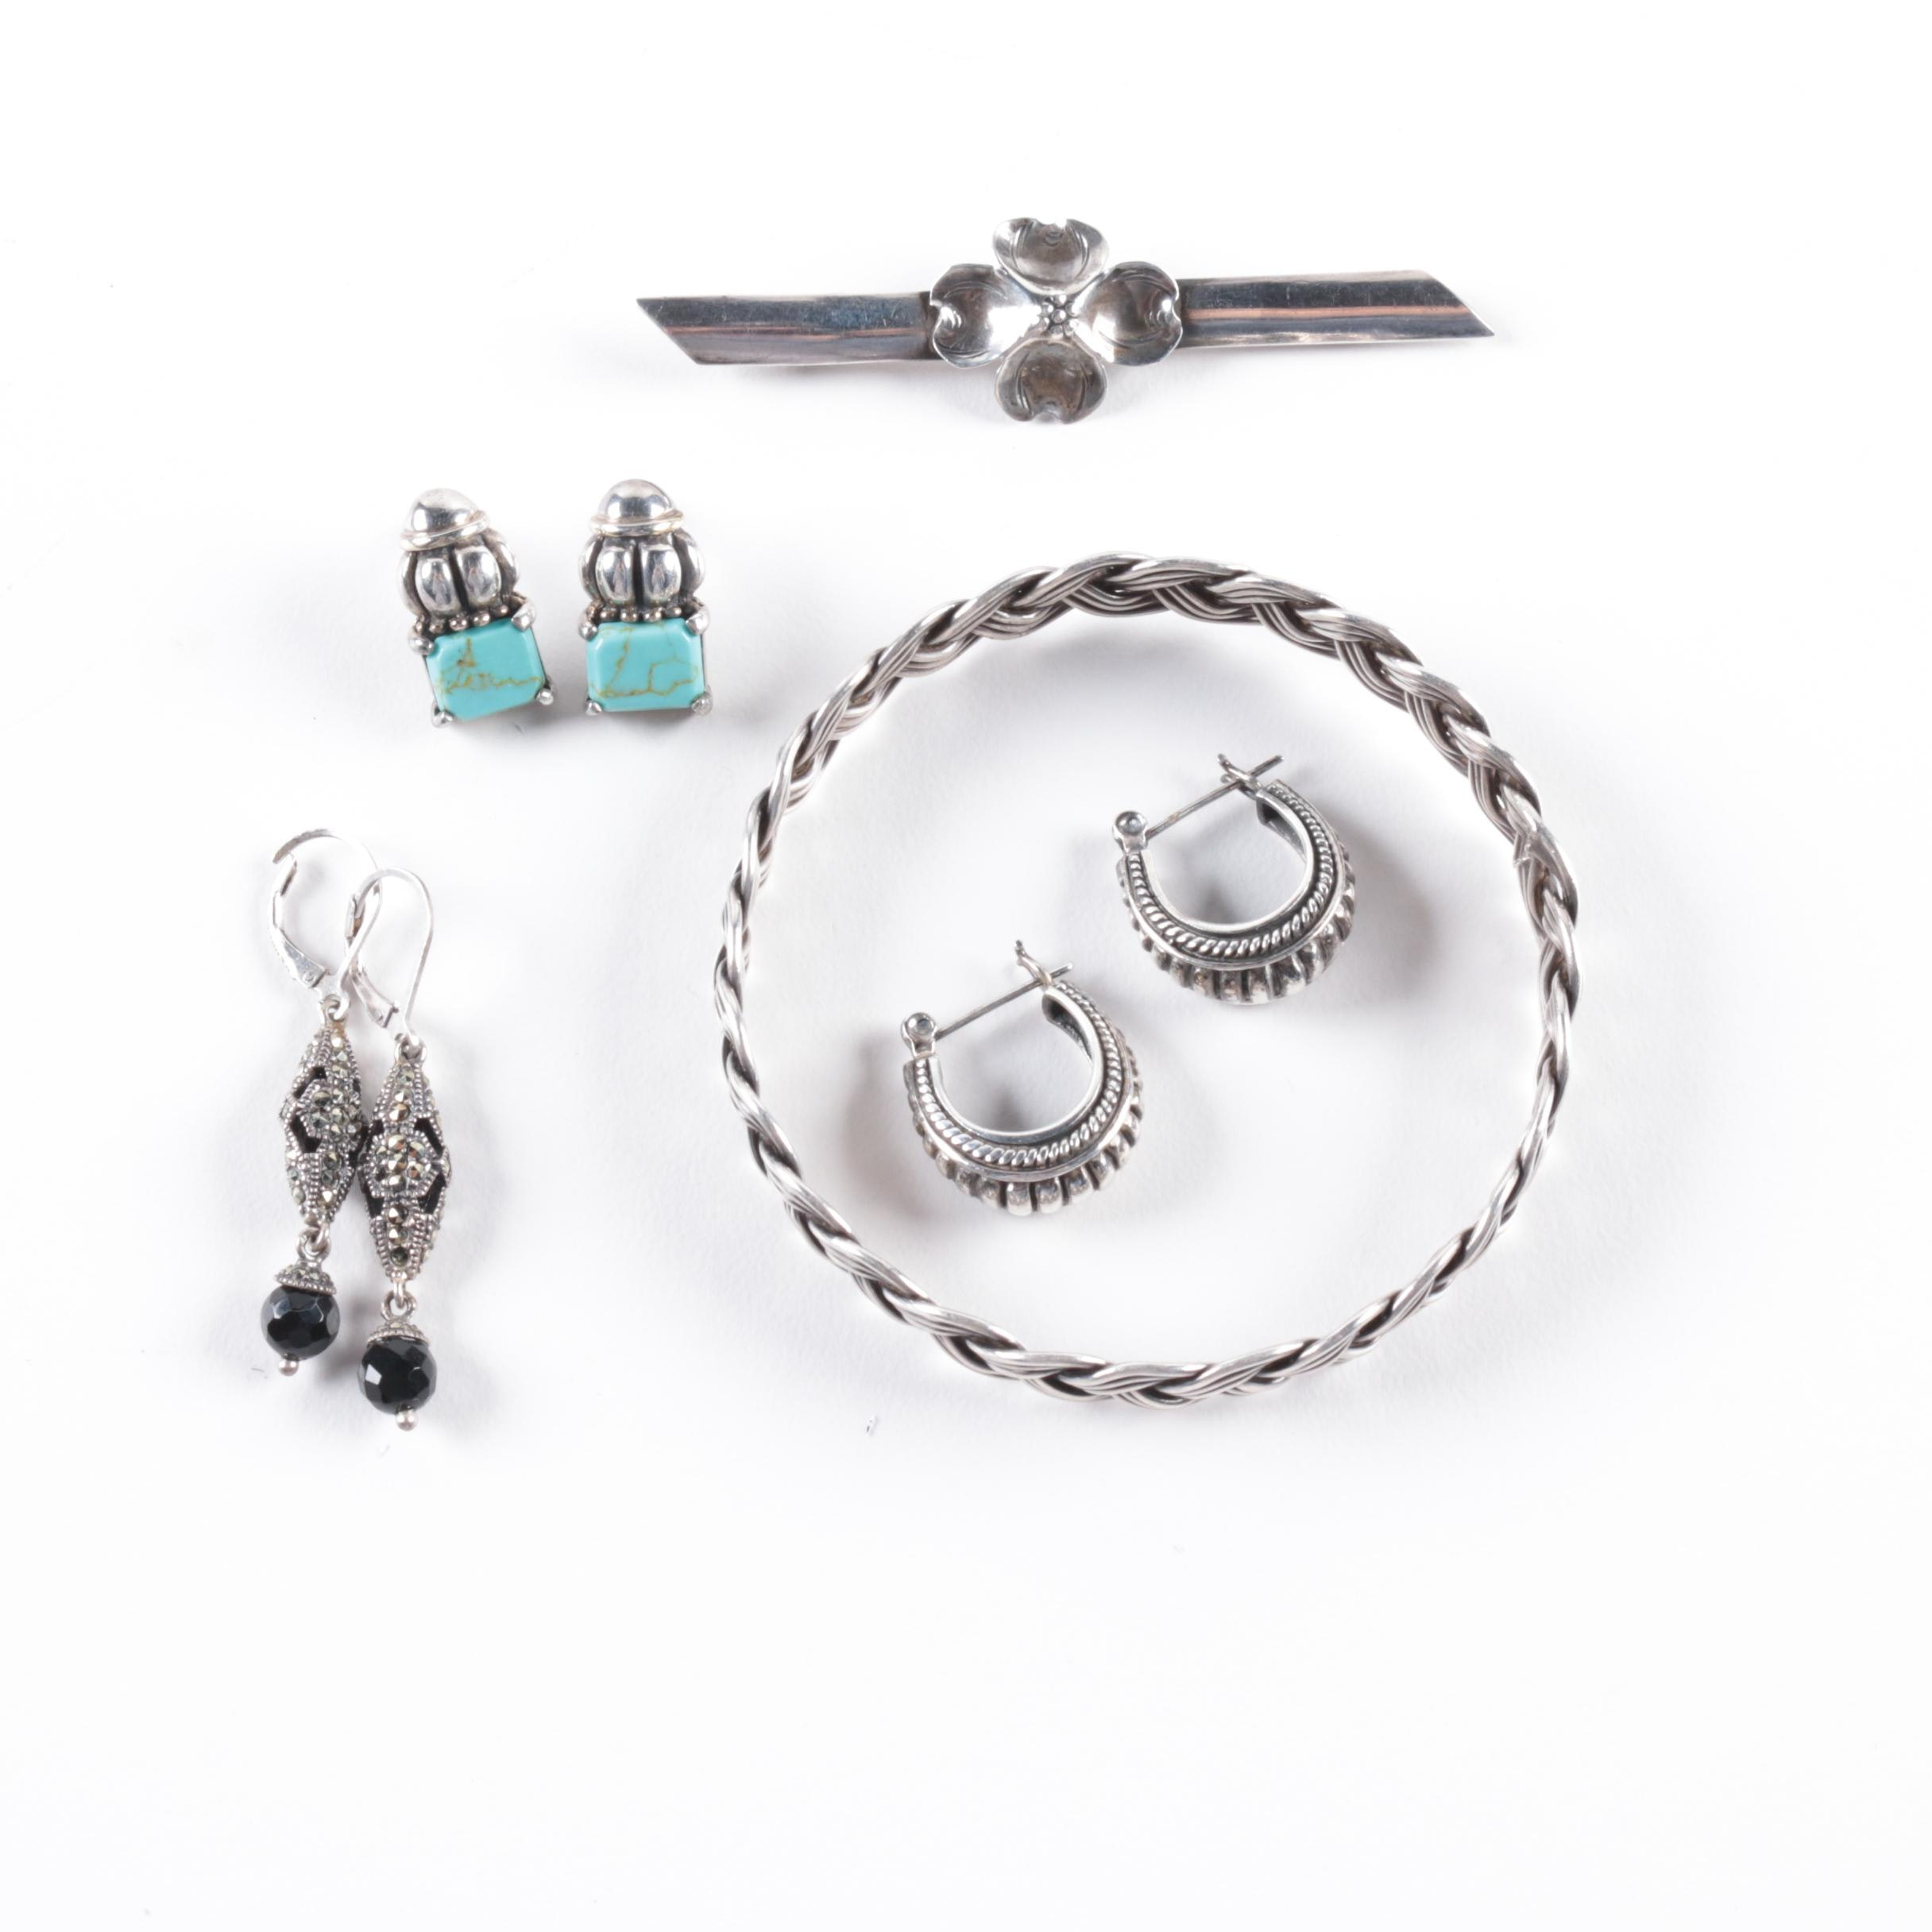 Stuart Nye Dogwood Brooch, Judith Jack Earrings and Other Sterling Jewelry